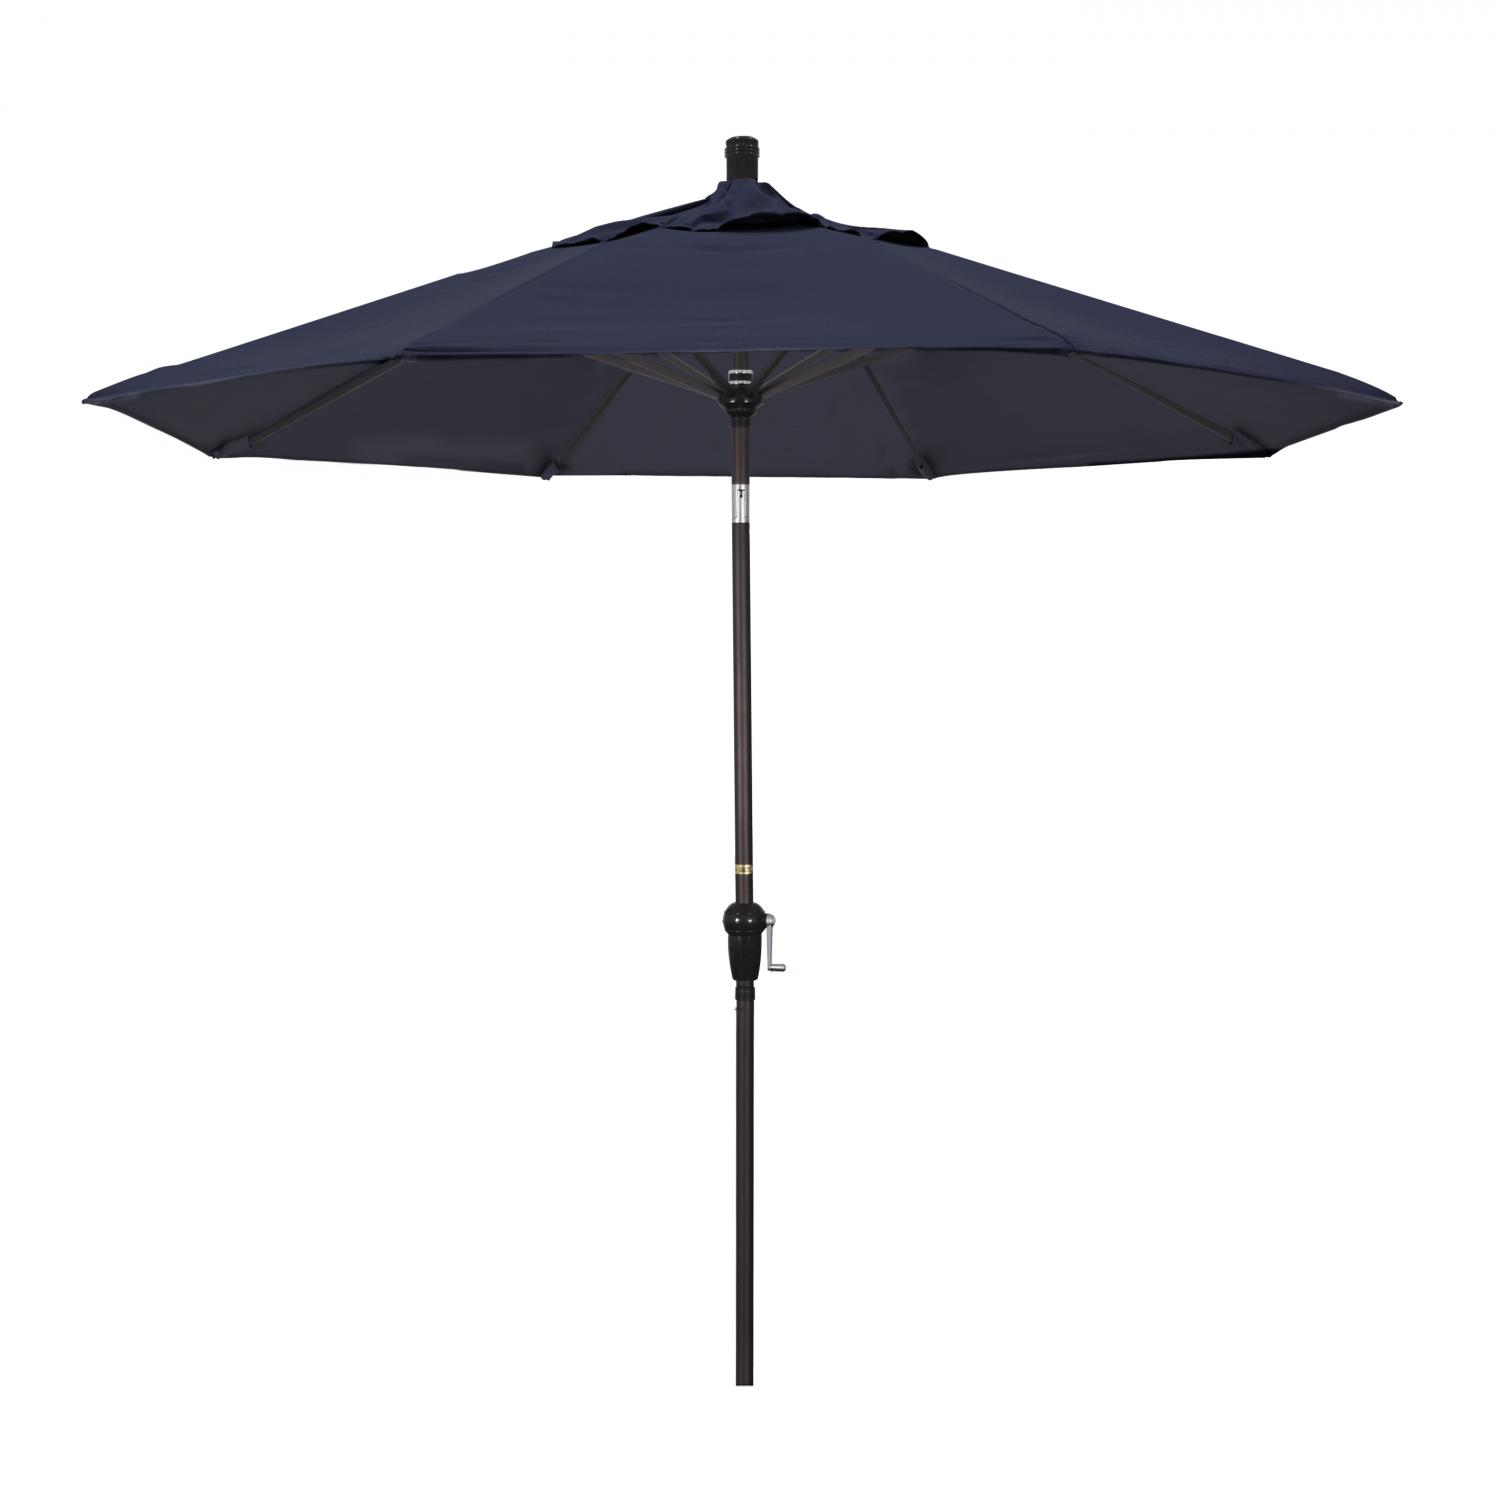 California Umbrella 9 Ft. Octagonal Aluminum Auto Tilt Patio Umbrella W/ Crank Lift & Aluminum Ribs - Bronze Frame / Sunbrella Canvas Navy Canopy